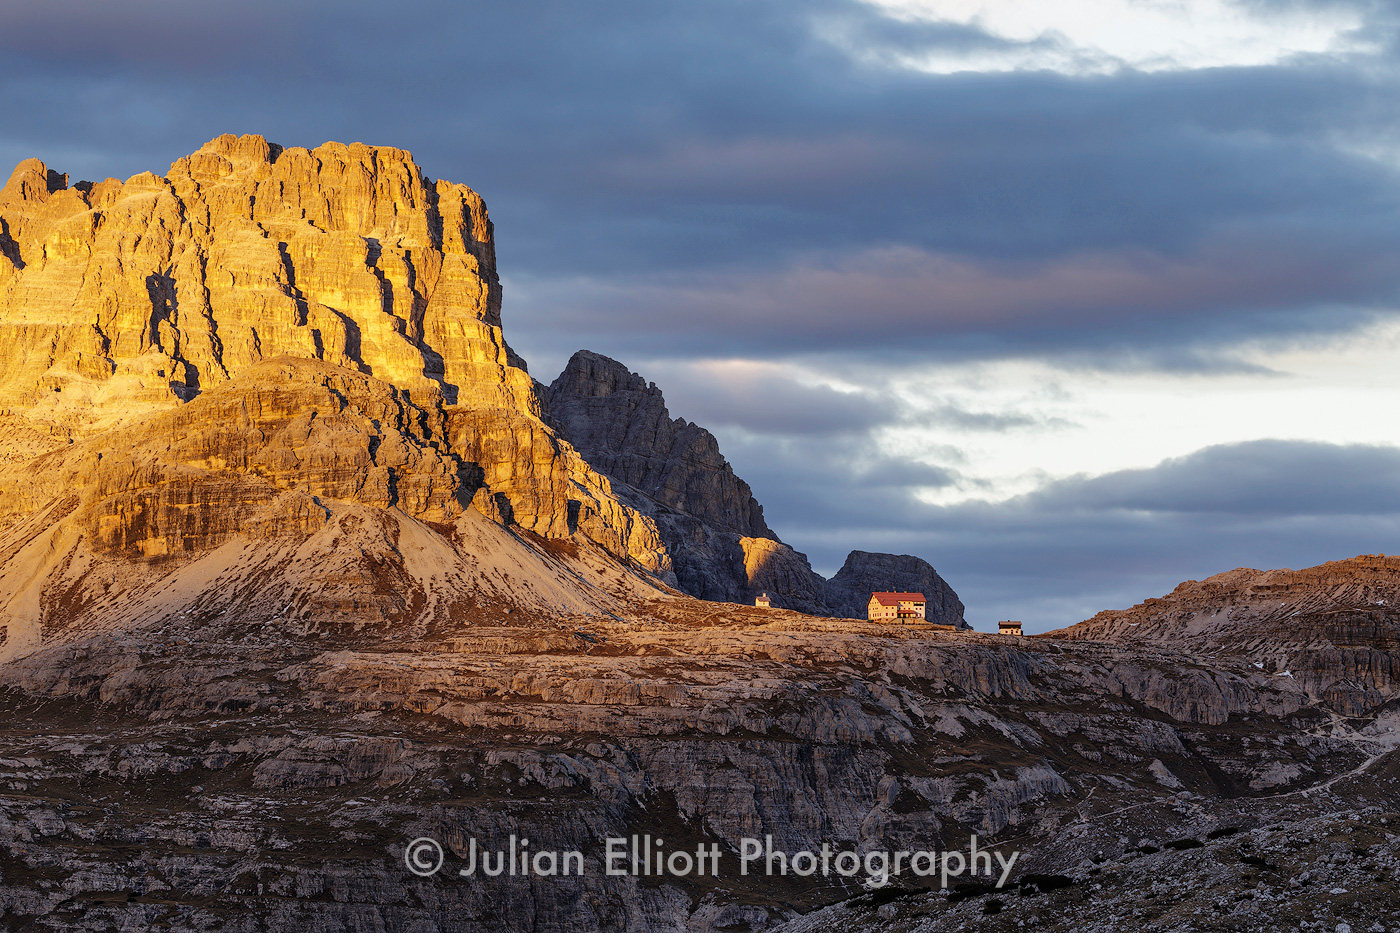 Rifugio Locatelli lit by the setting sun in the Dolomites, Italy.